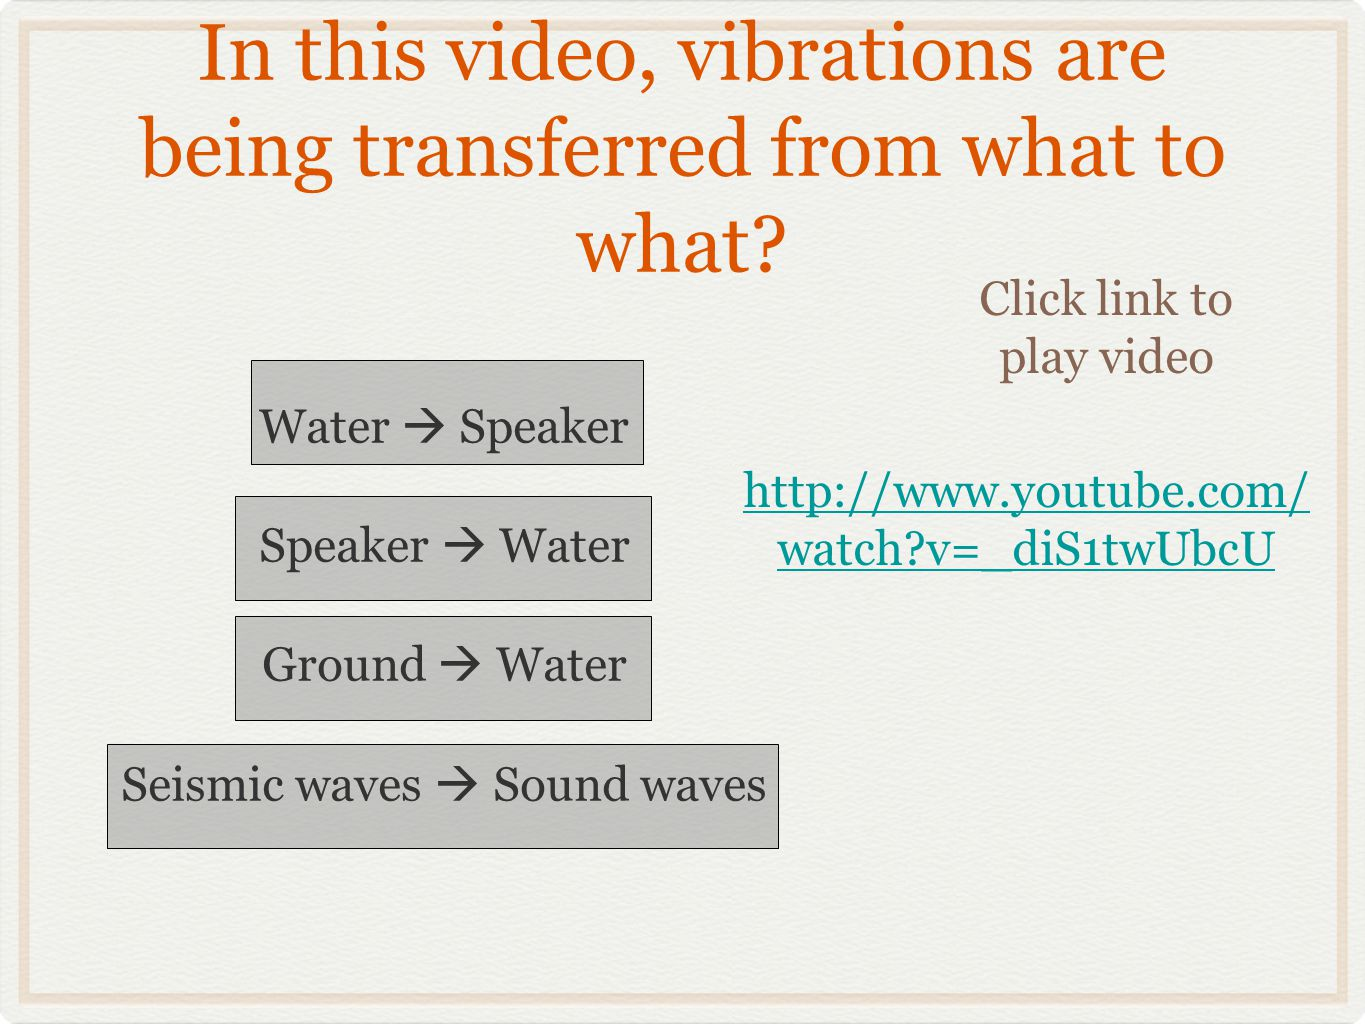 In this video, vibrations are being transferred from what to what